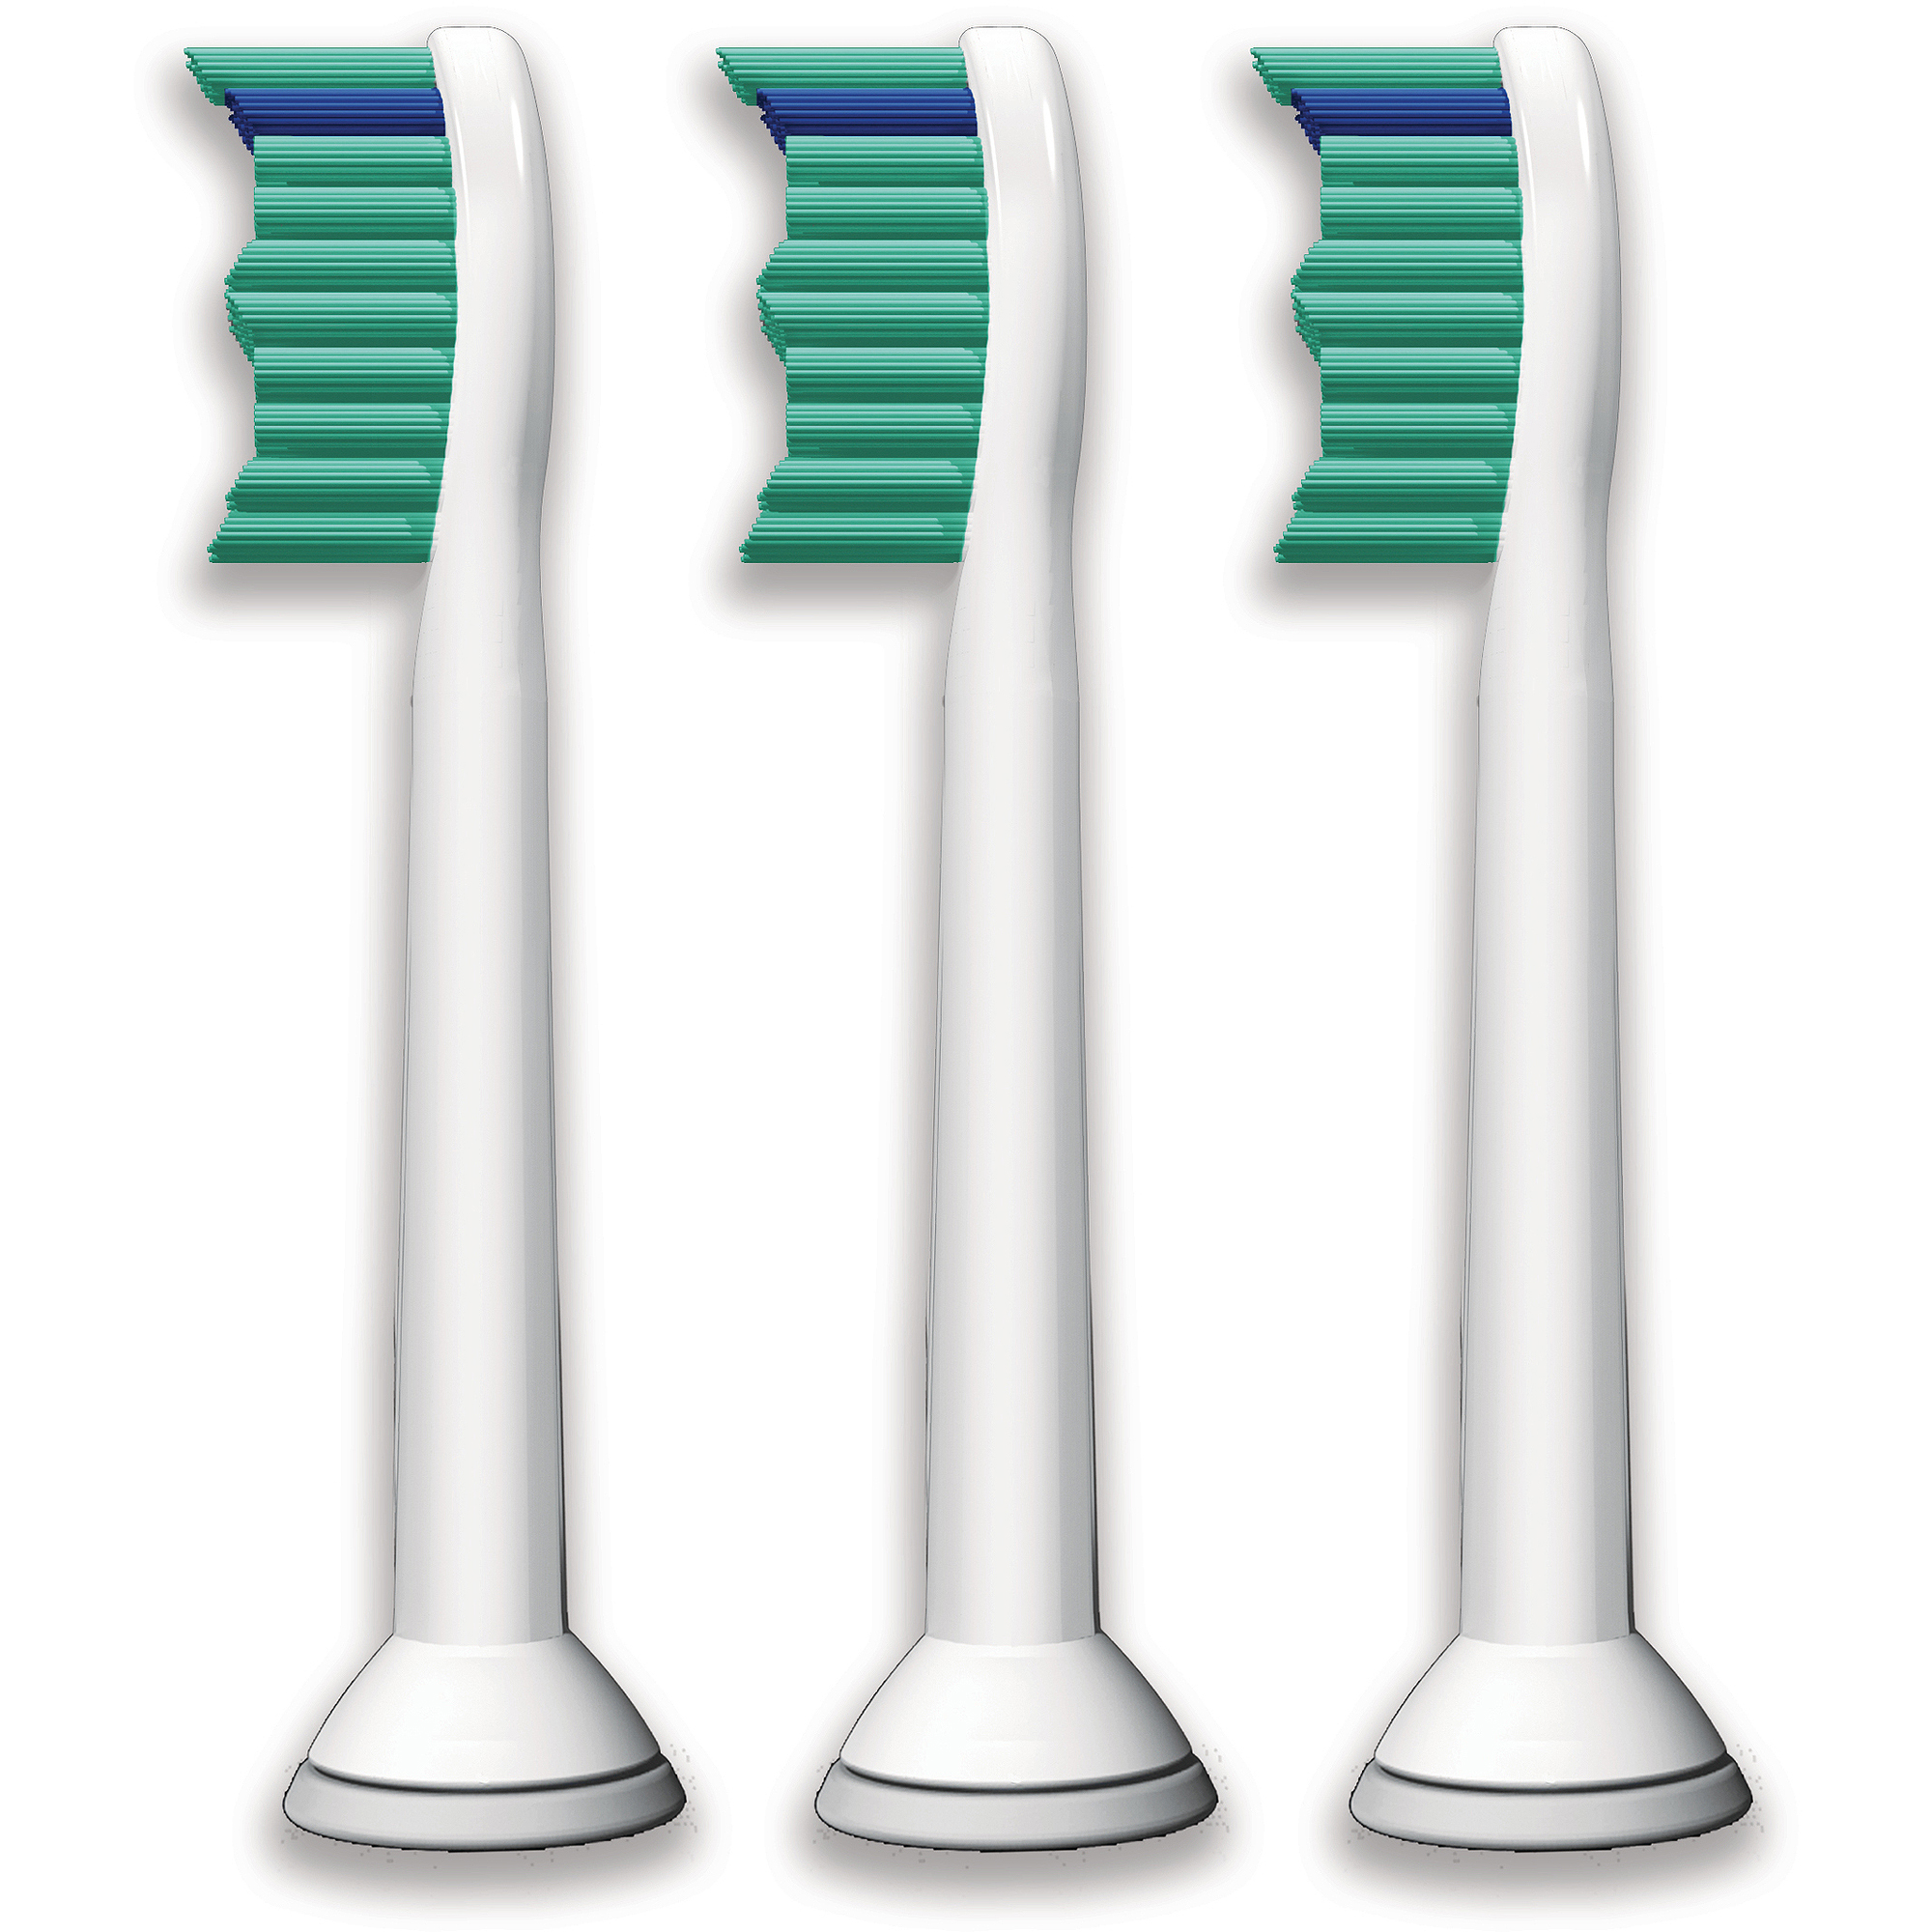 Philips Sonicare HX6013/64 ProResults Toothbrush Heads, HX6013/64, 3 count